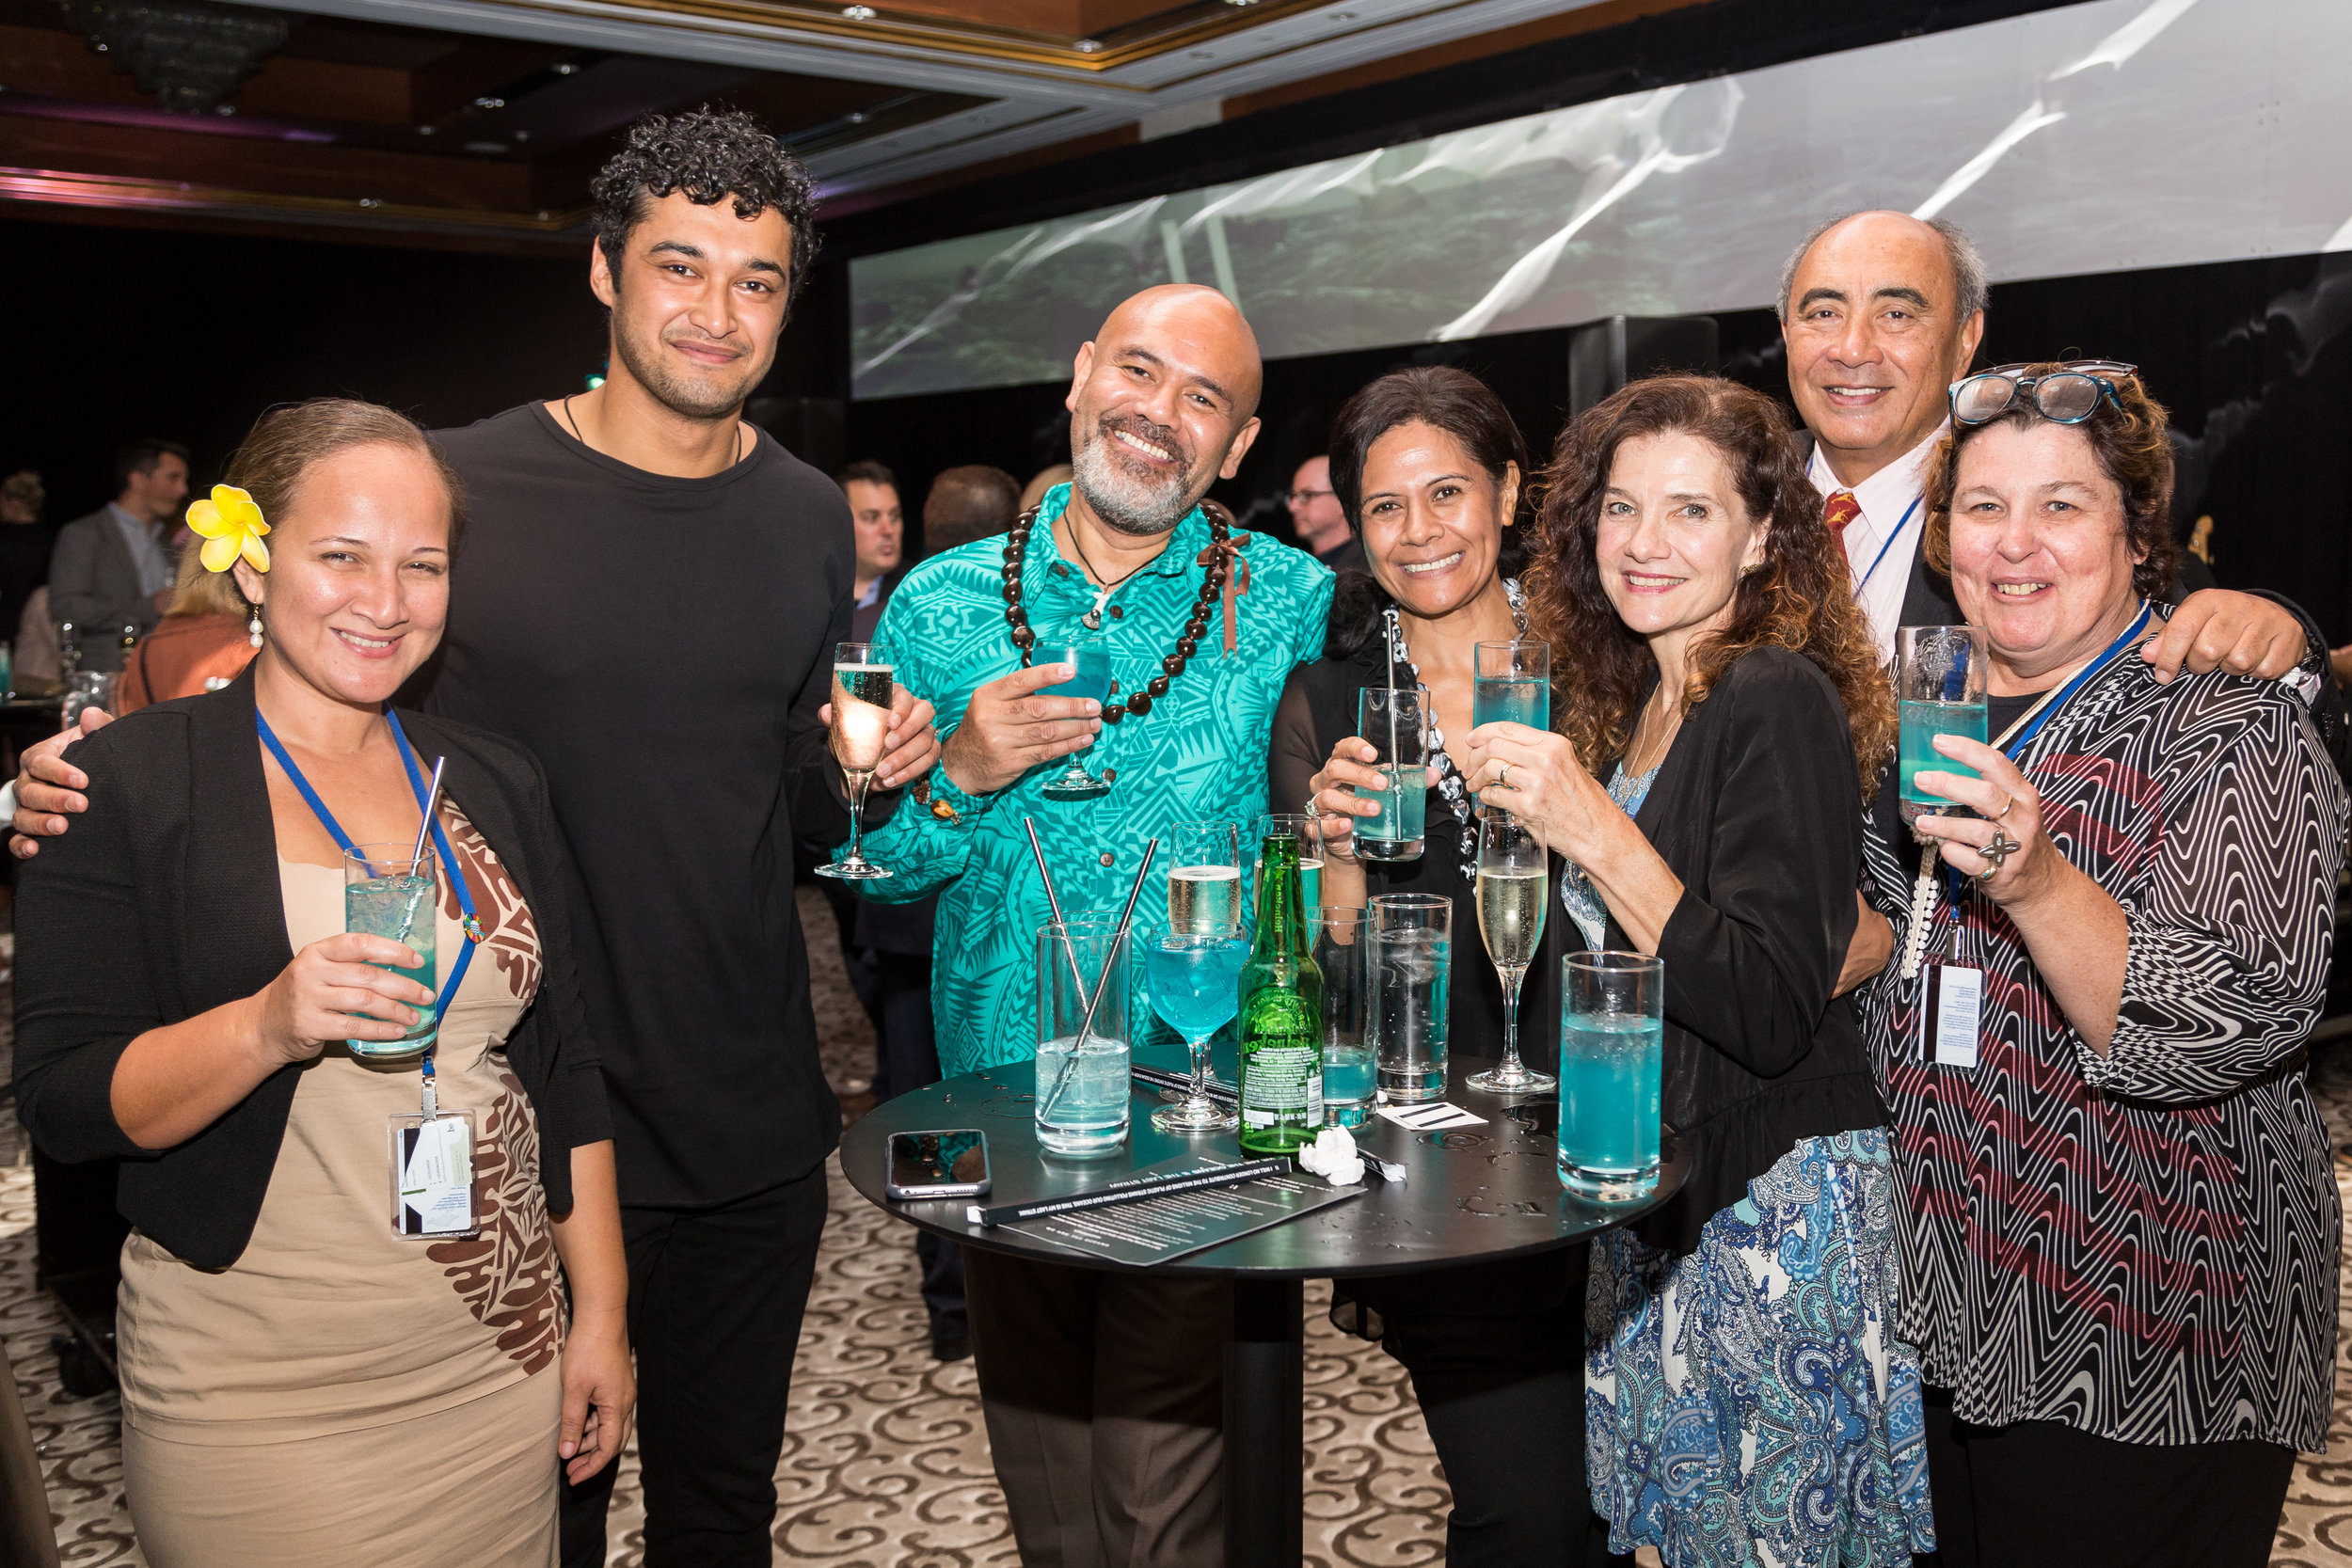 GUESTS DRINK BLUE LYCHEE MARTINIS WITH THE LAST STRAW IN EACH OTHER'S COMPANY